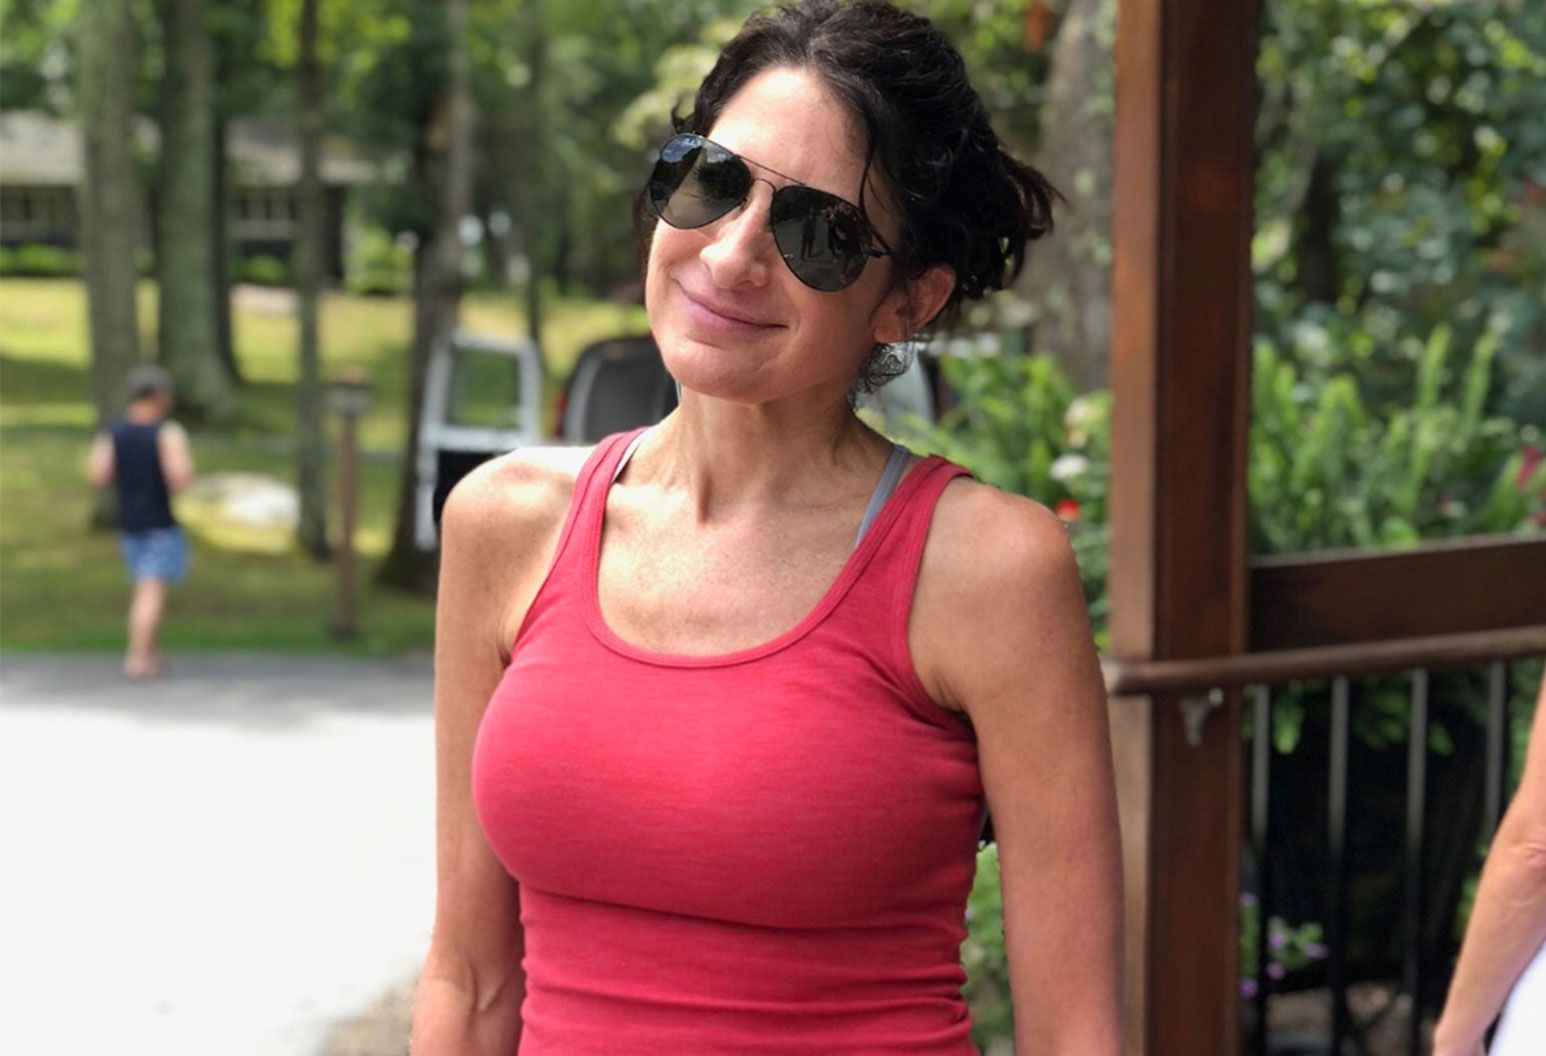 A woman stands outside smiling as she wears aviator sunglasses and a red tanktop.